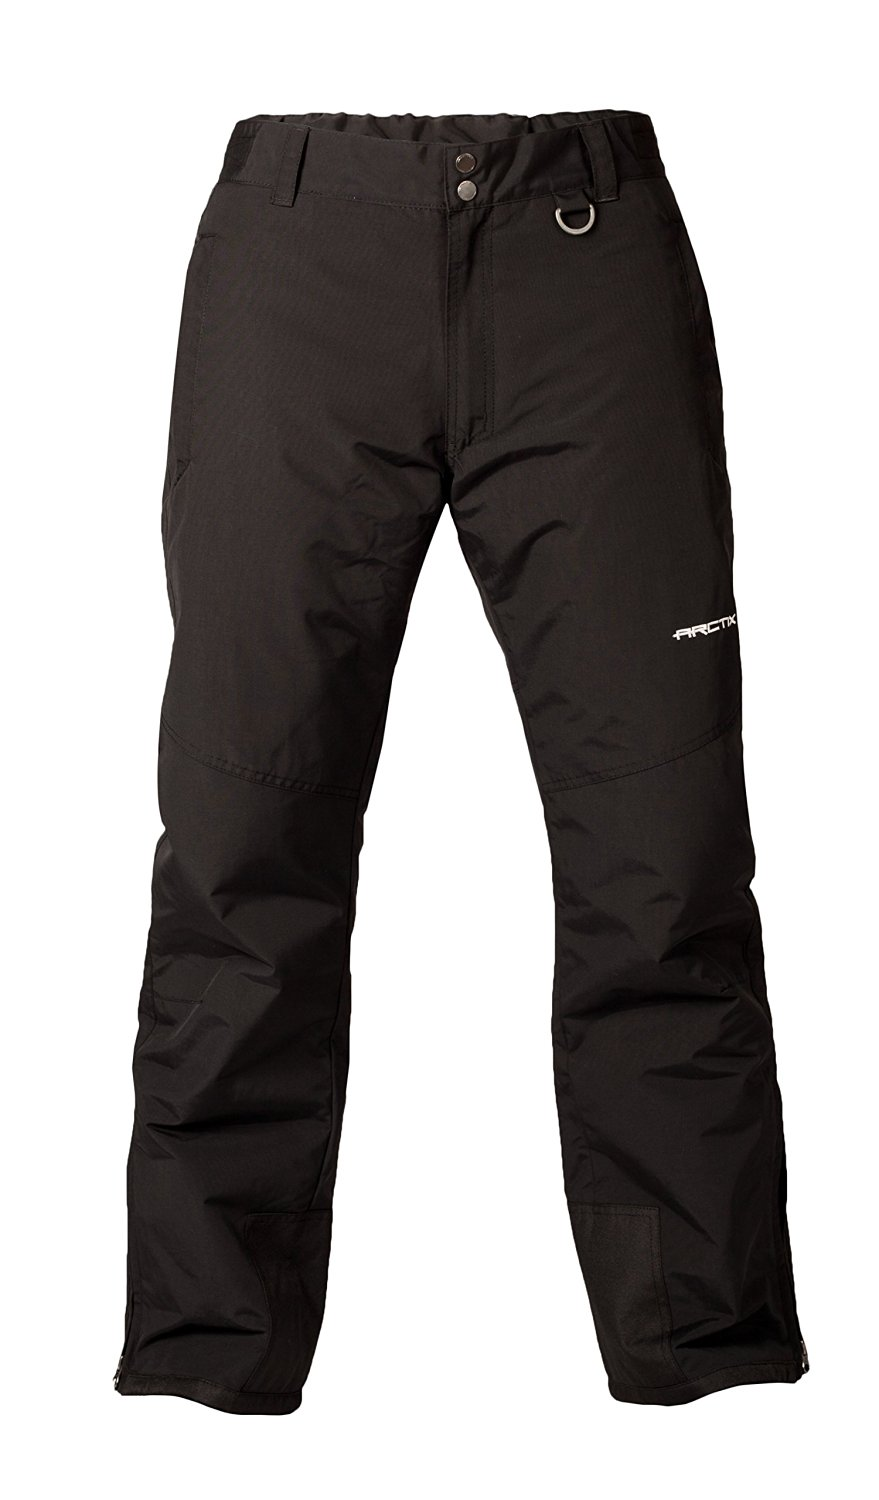 Arctix Men's Avalanche Ski Pants by Arctix